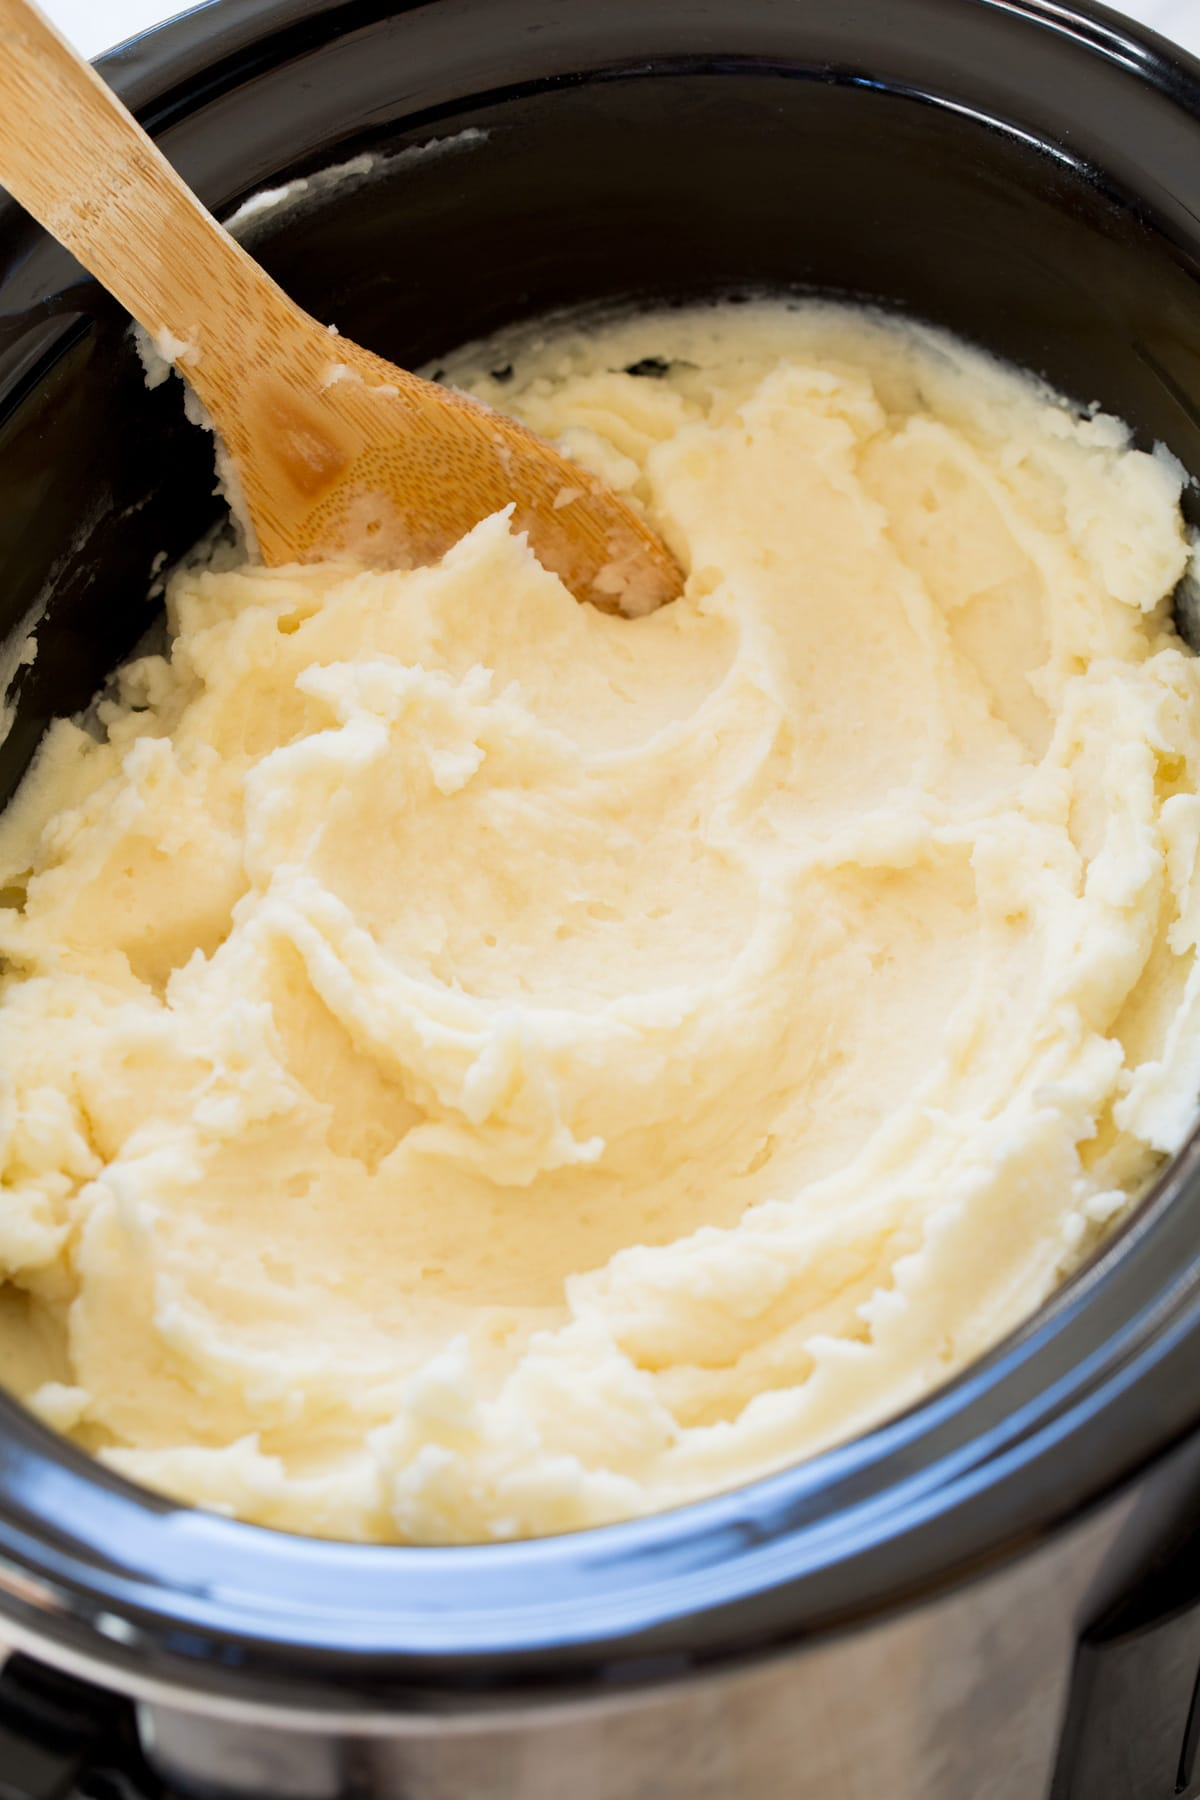 Crockpot Mashed Potatoes Recipe - Cooking Classy